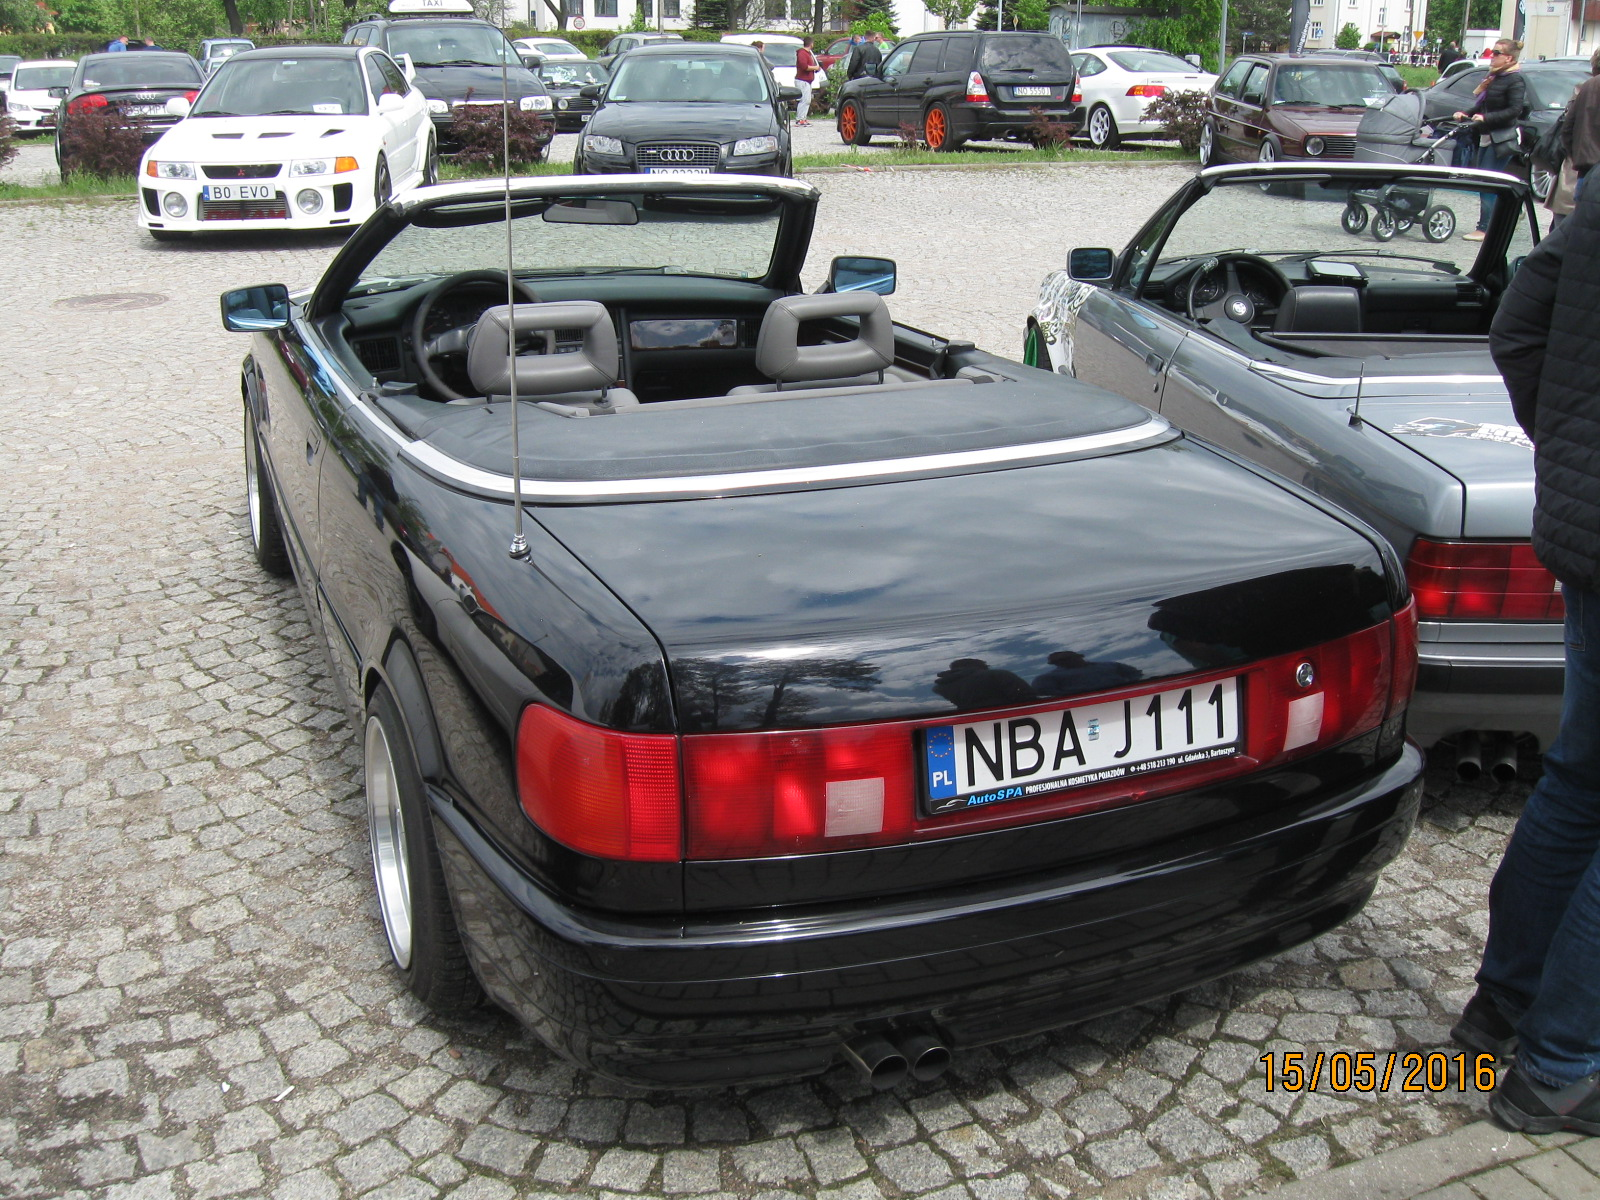 http://124coupe.pl/hosting/images/1463322830.jpg